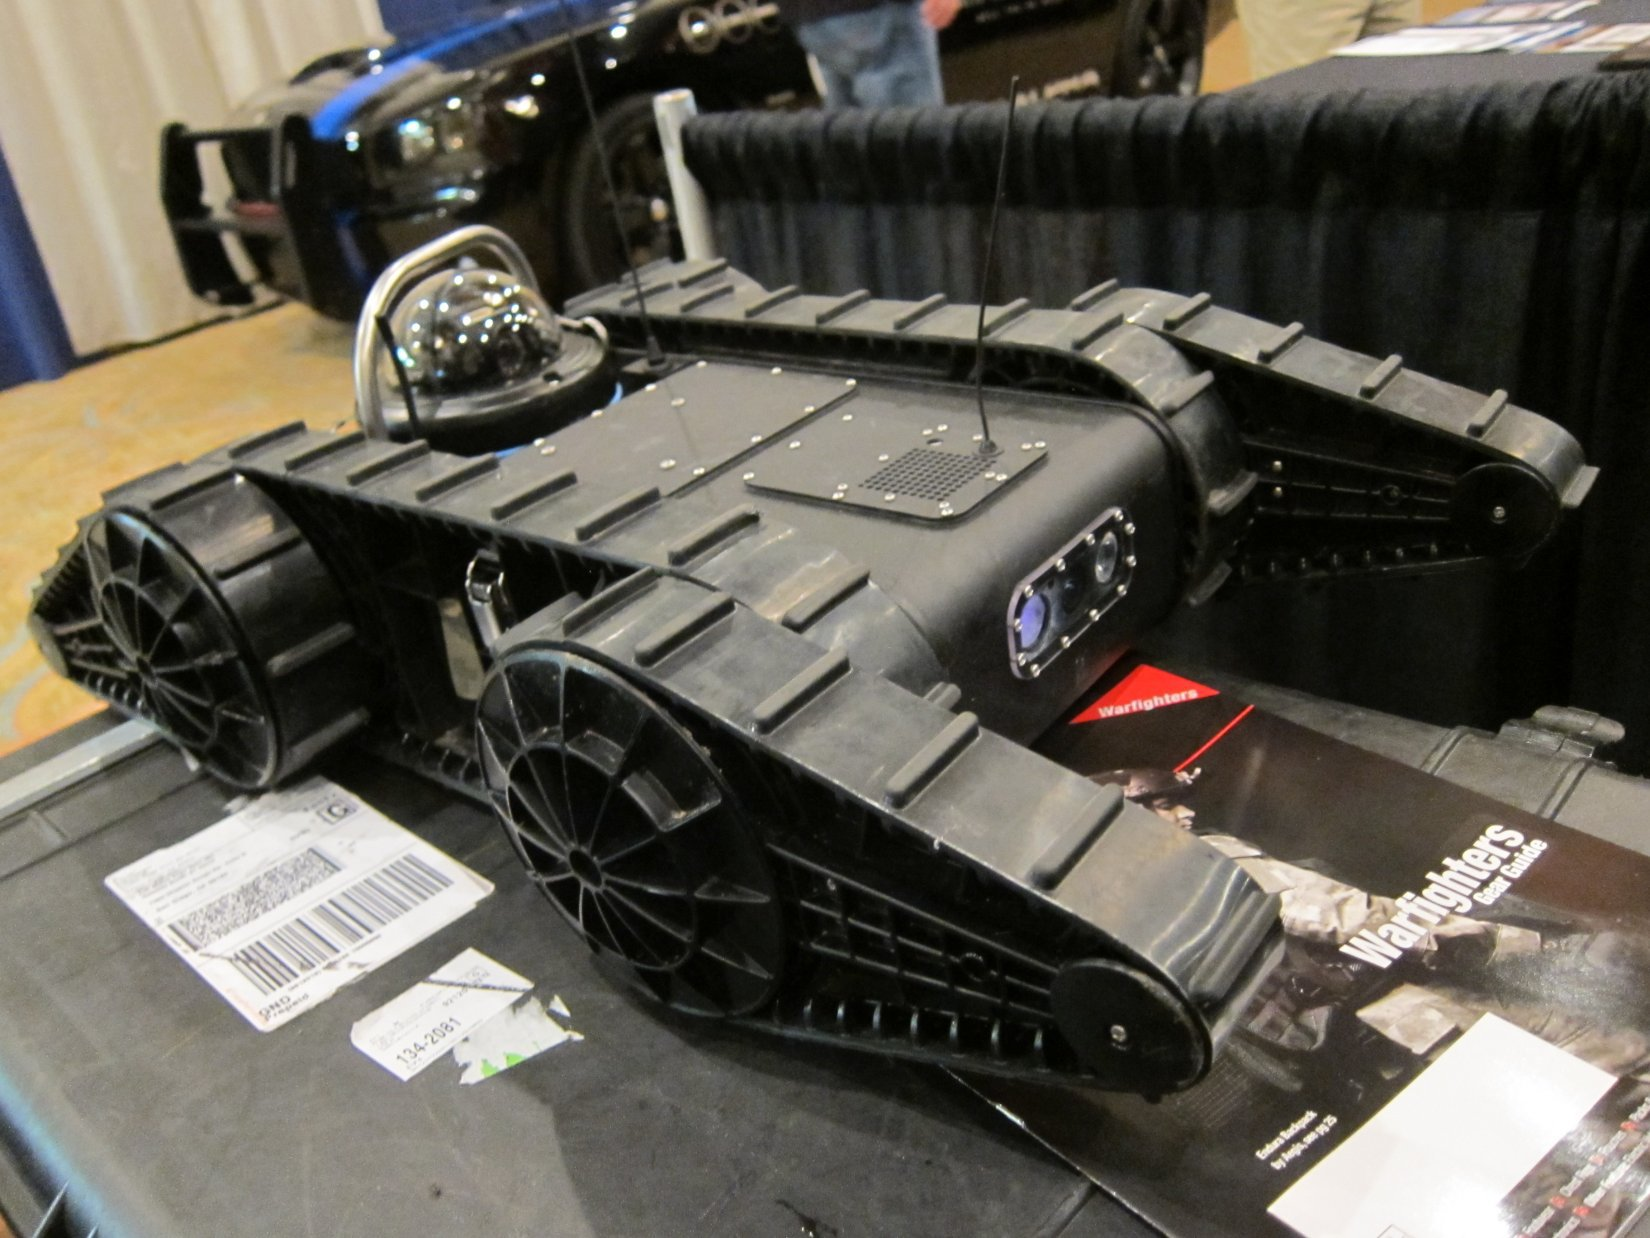 RoboteX AVATAR II Micro Tactical Robot/UGV: Ultra-Agile, Waterproof Mini Tactical Recon Bot for Military Urban Warfare and Law Enforcement SWAT Ops (Video!)